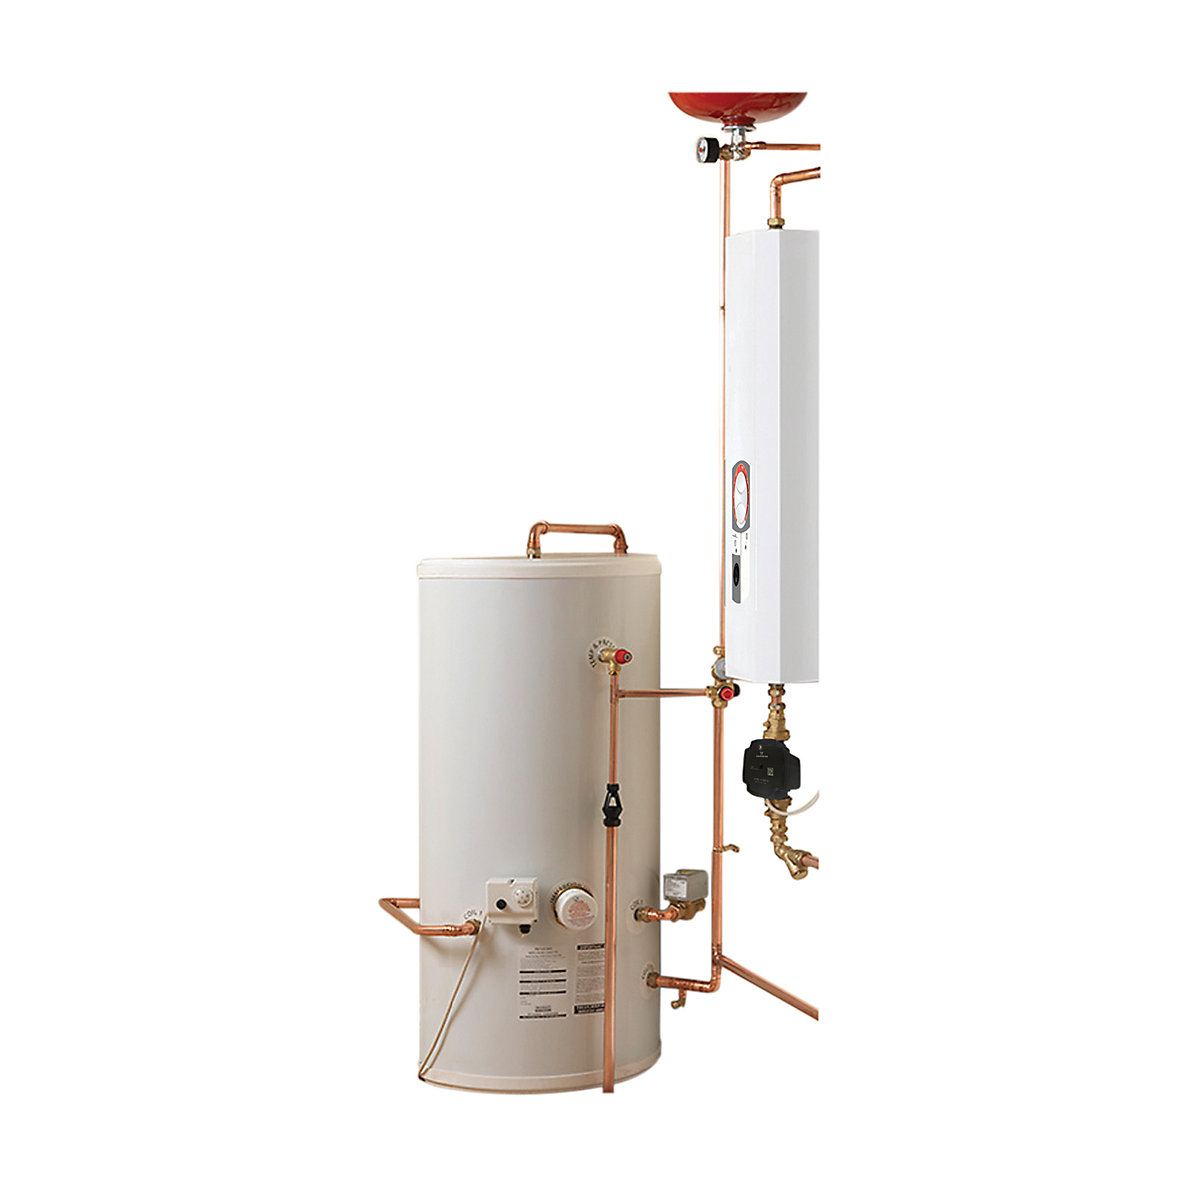 Electric Heating Company Compact CPSICOMP12/150 Electric Boiler ...